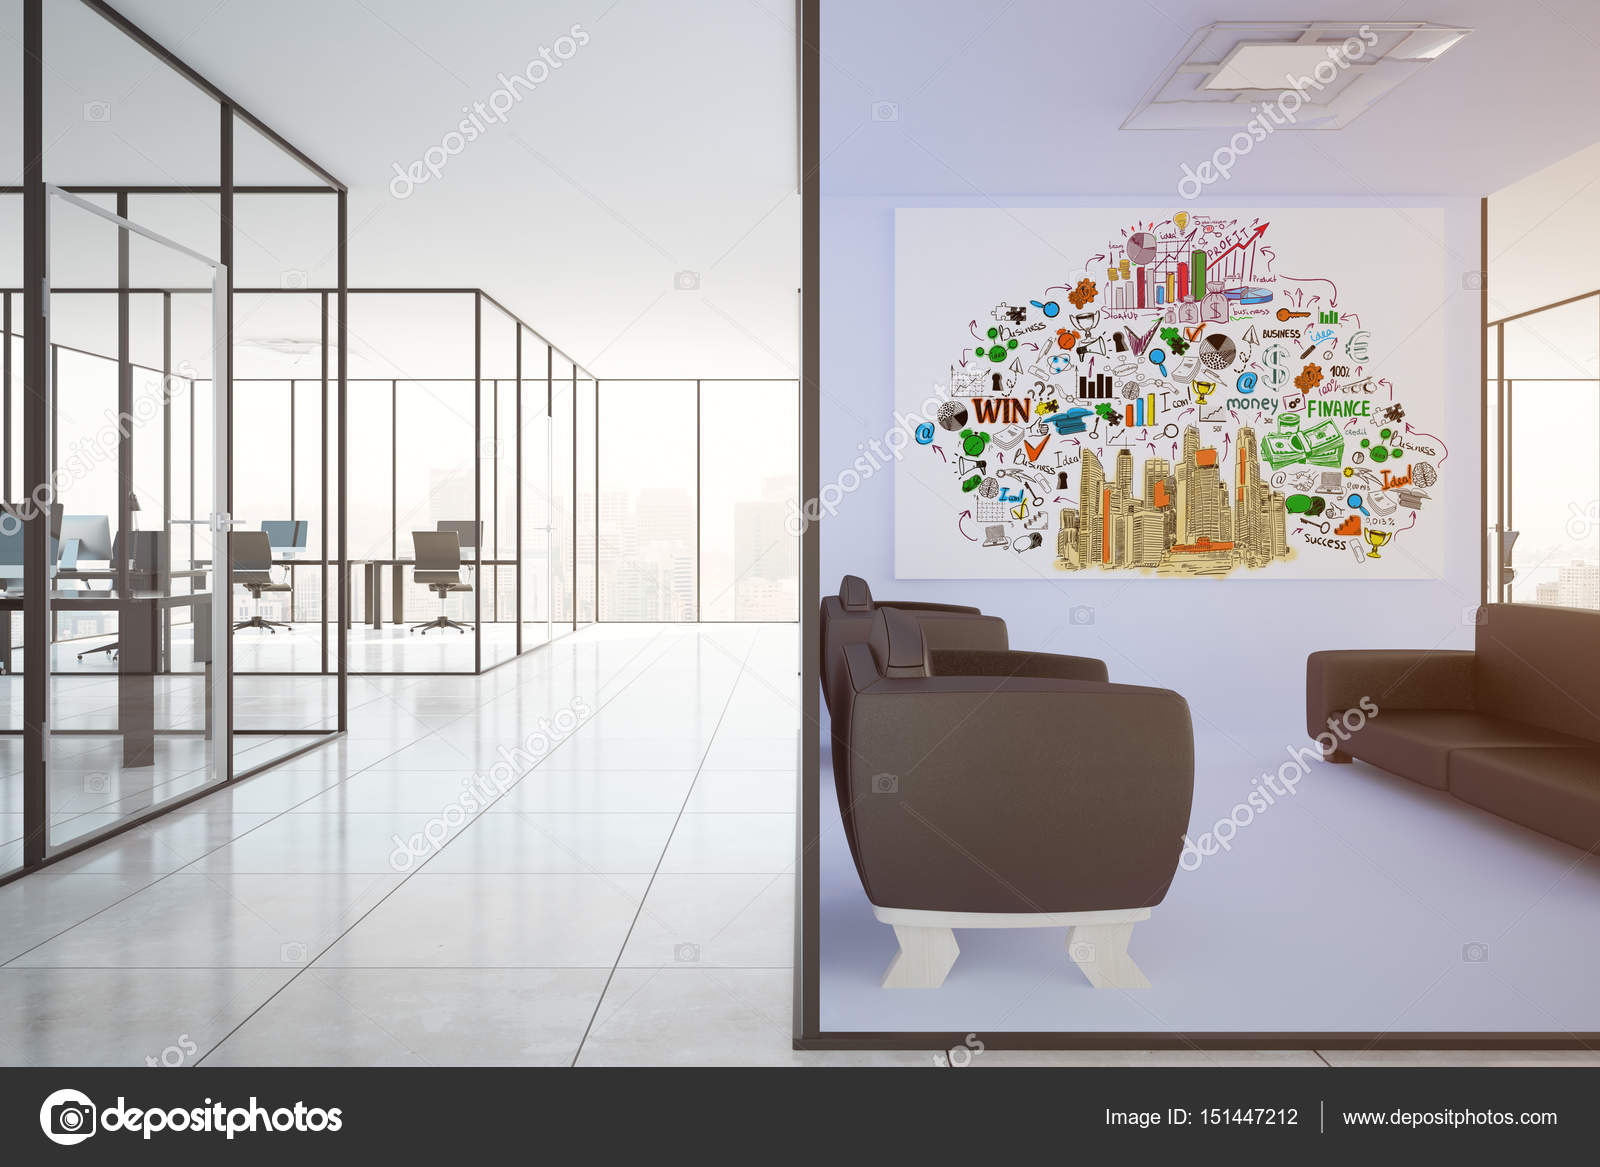 modern office walls. Modern Office Interior With Lounge Area, Workplaces And Business Sketch On Wall. Success Concept Walls